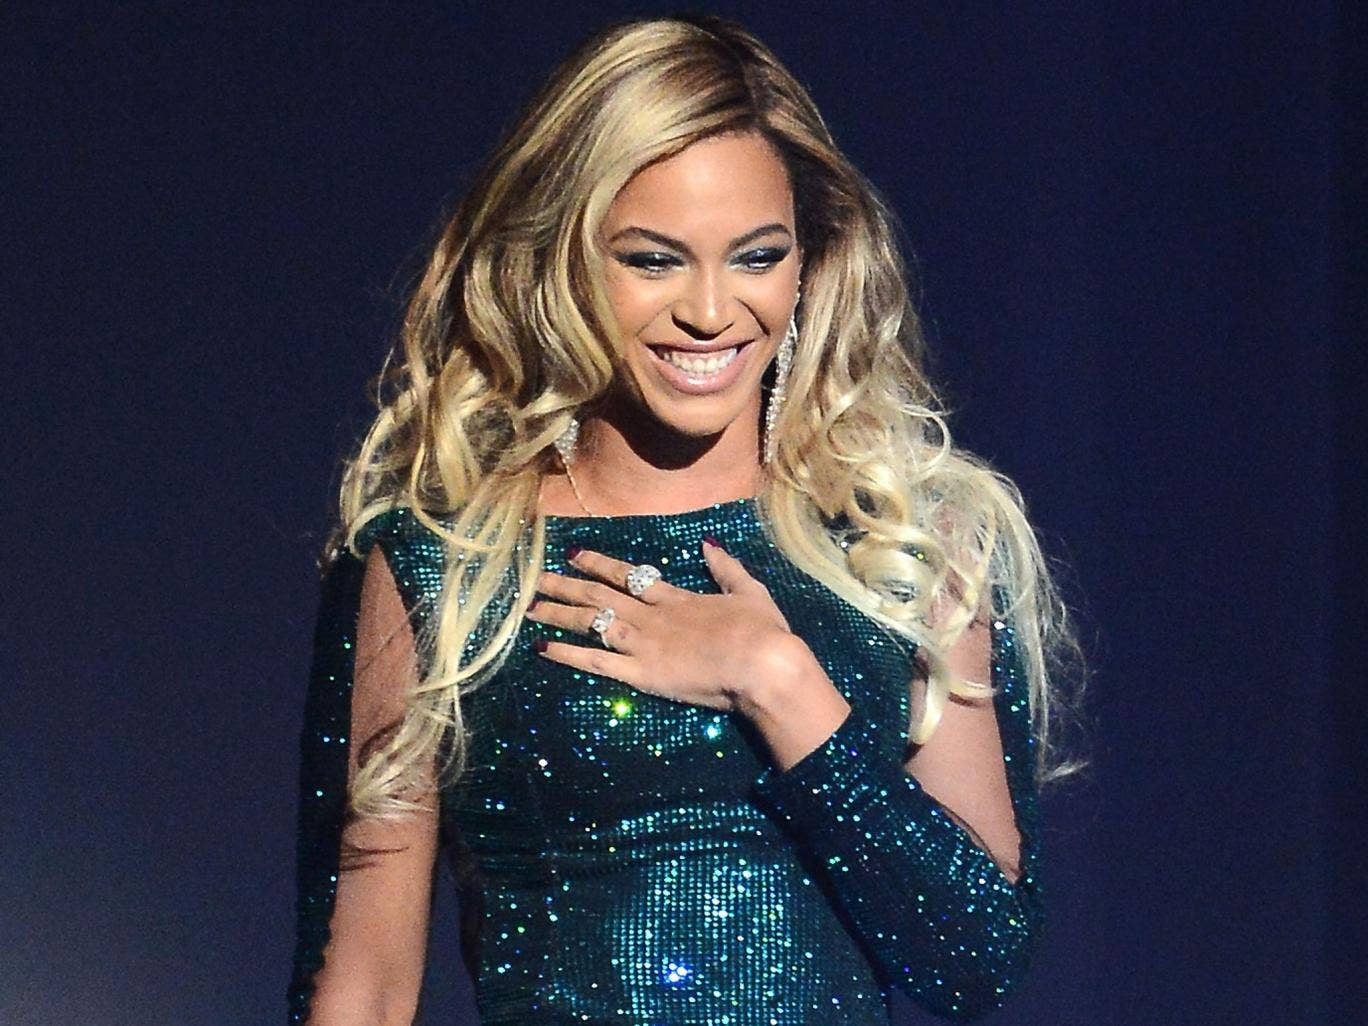 Beyoncé now has a whole radio station dedicated to her